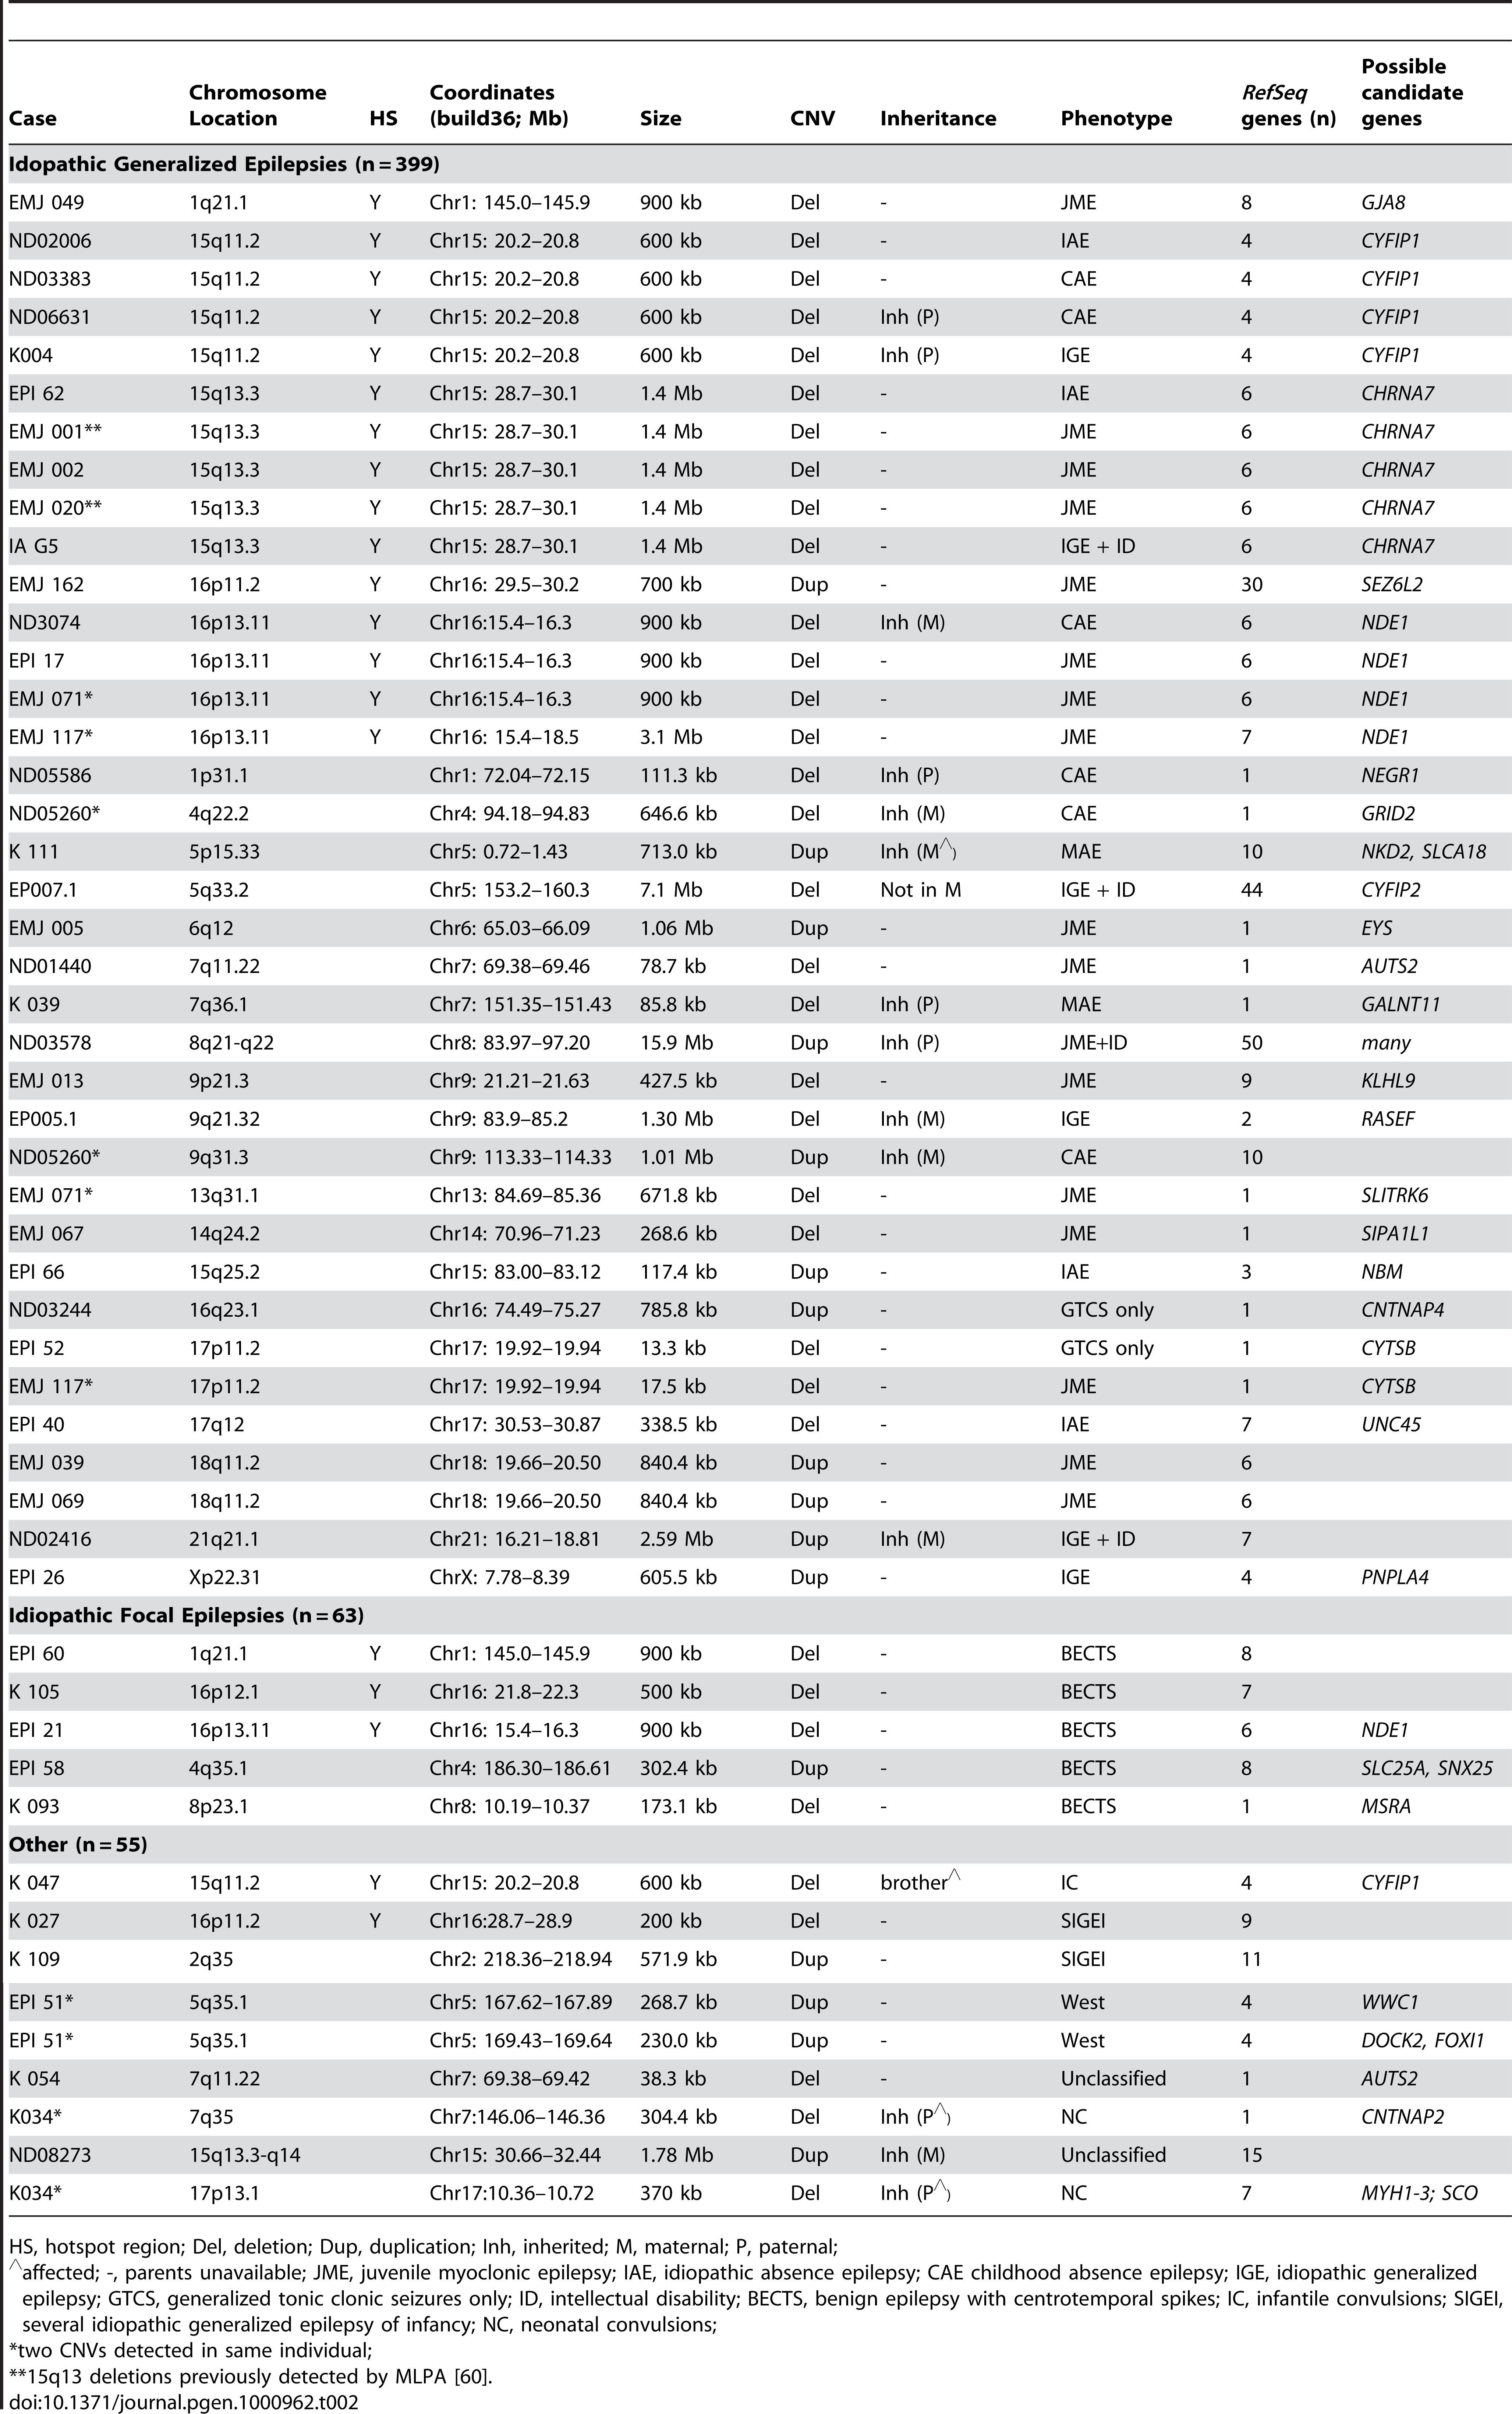 Rare copy number variants in 517 patients with epilepsy.